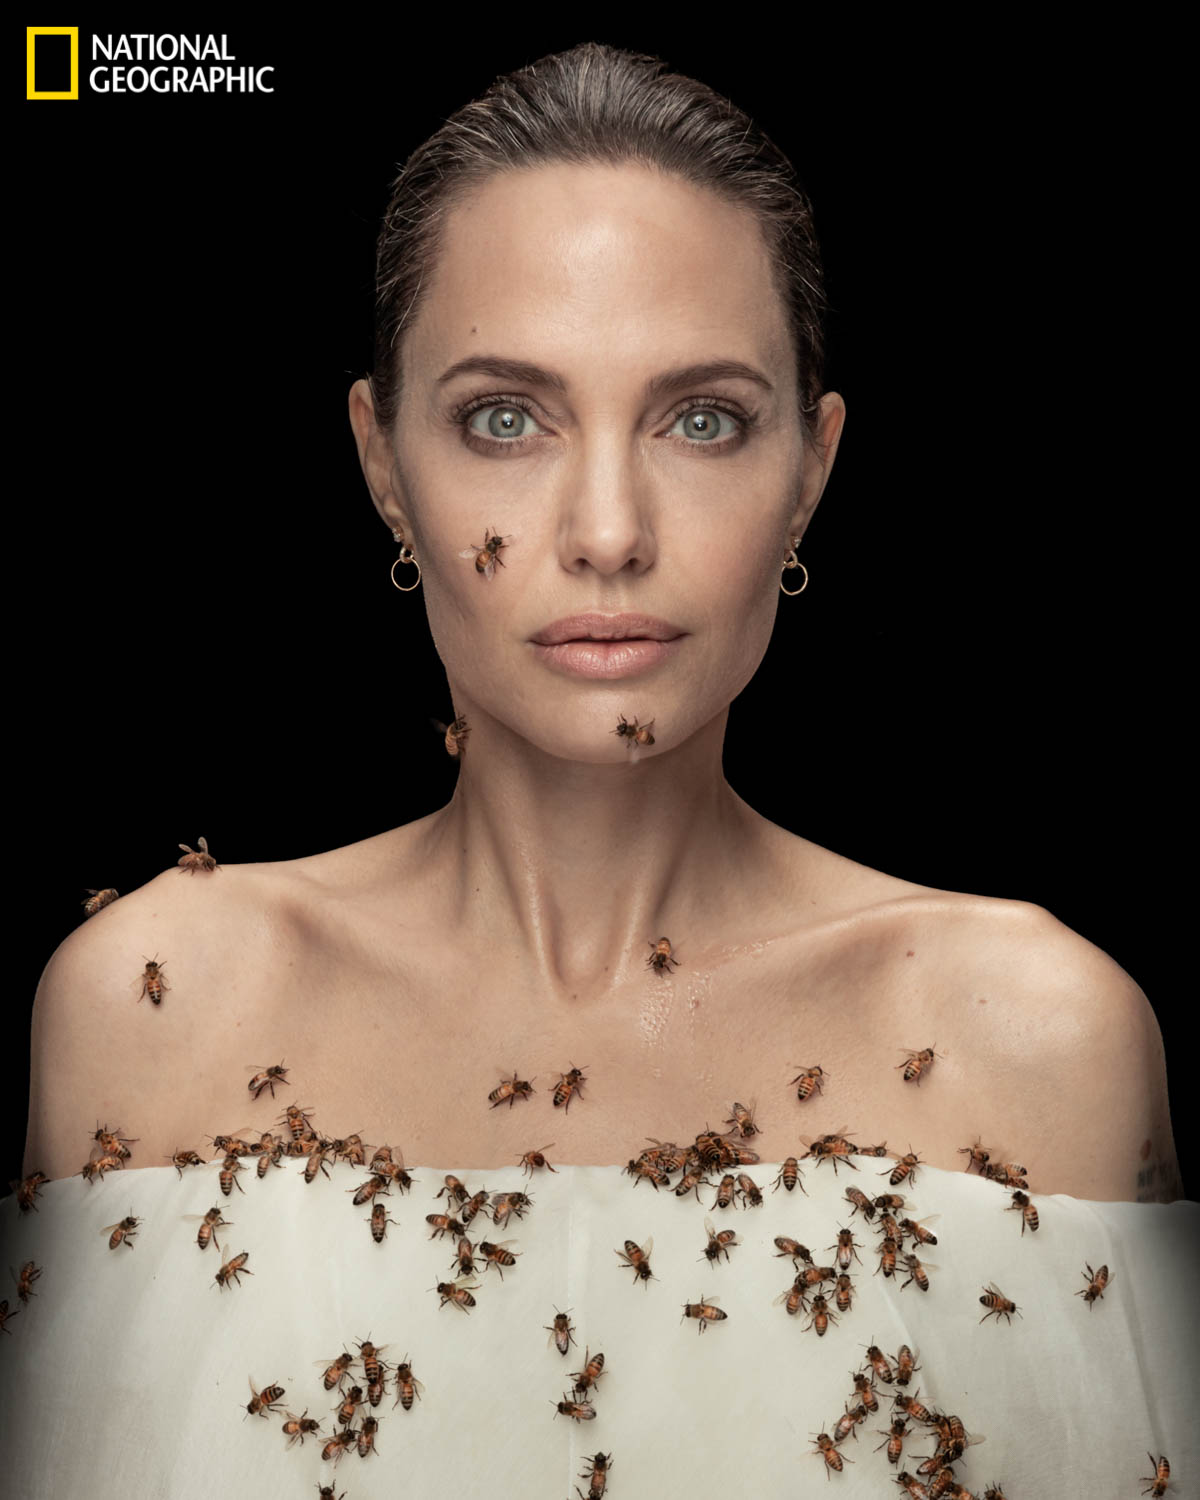 NATIONAL GEOGRAPHIC CELEBRATES 'WORLD BEE DAY' WITH ANGELINA JOLIE IN A COLLABORATIVE EFFORT TO PROTECT BEES